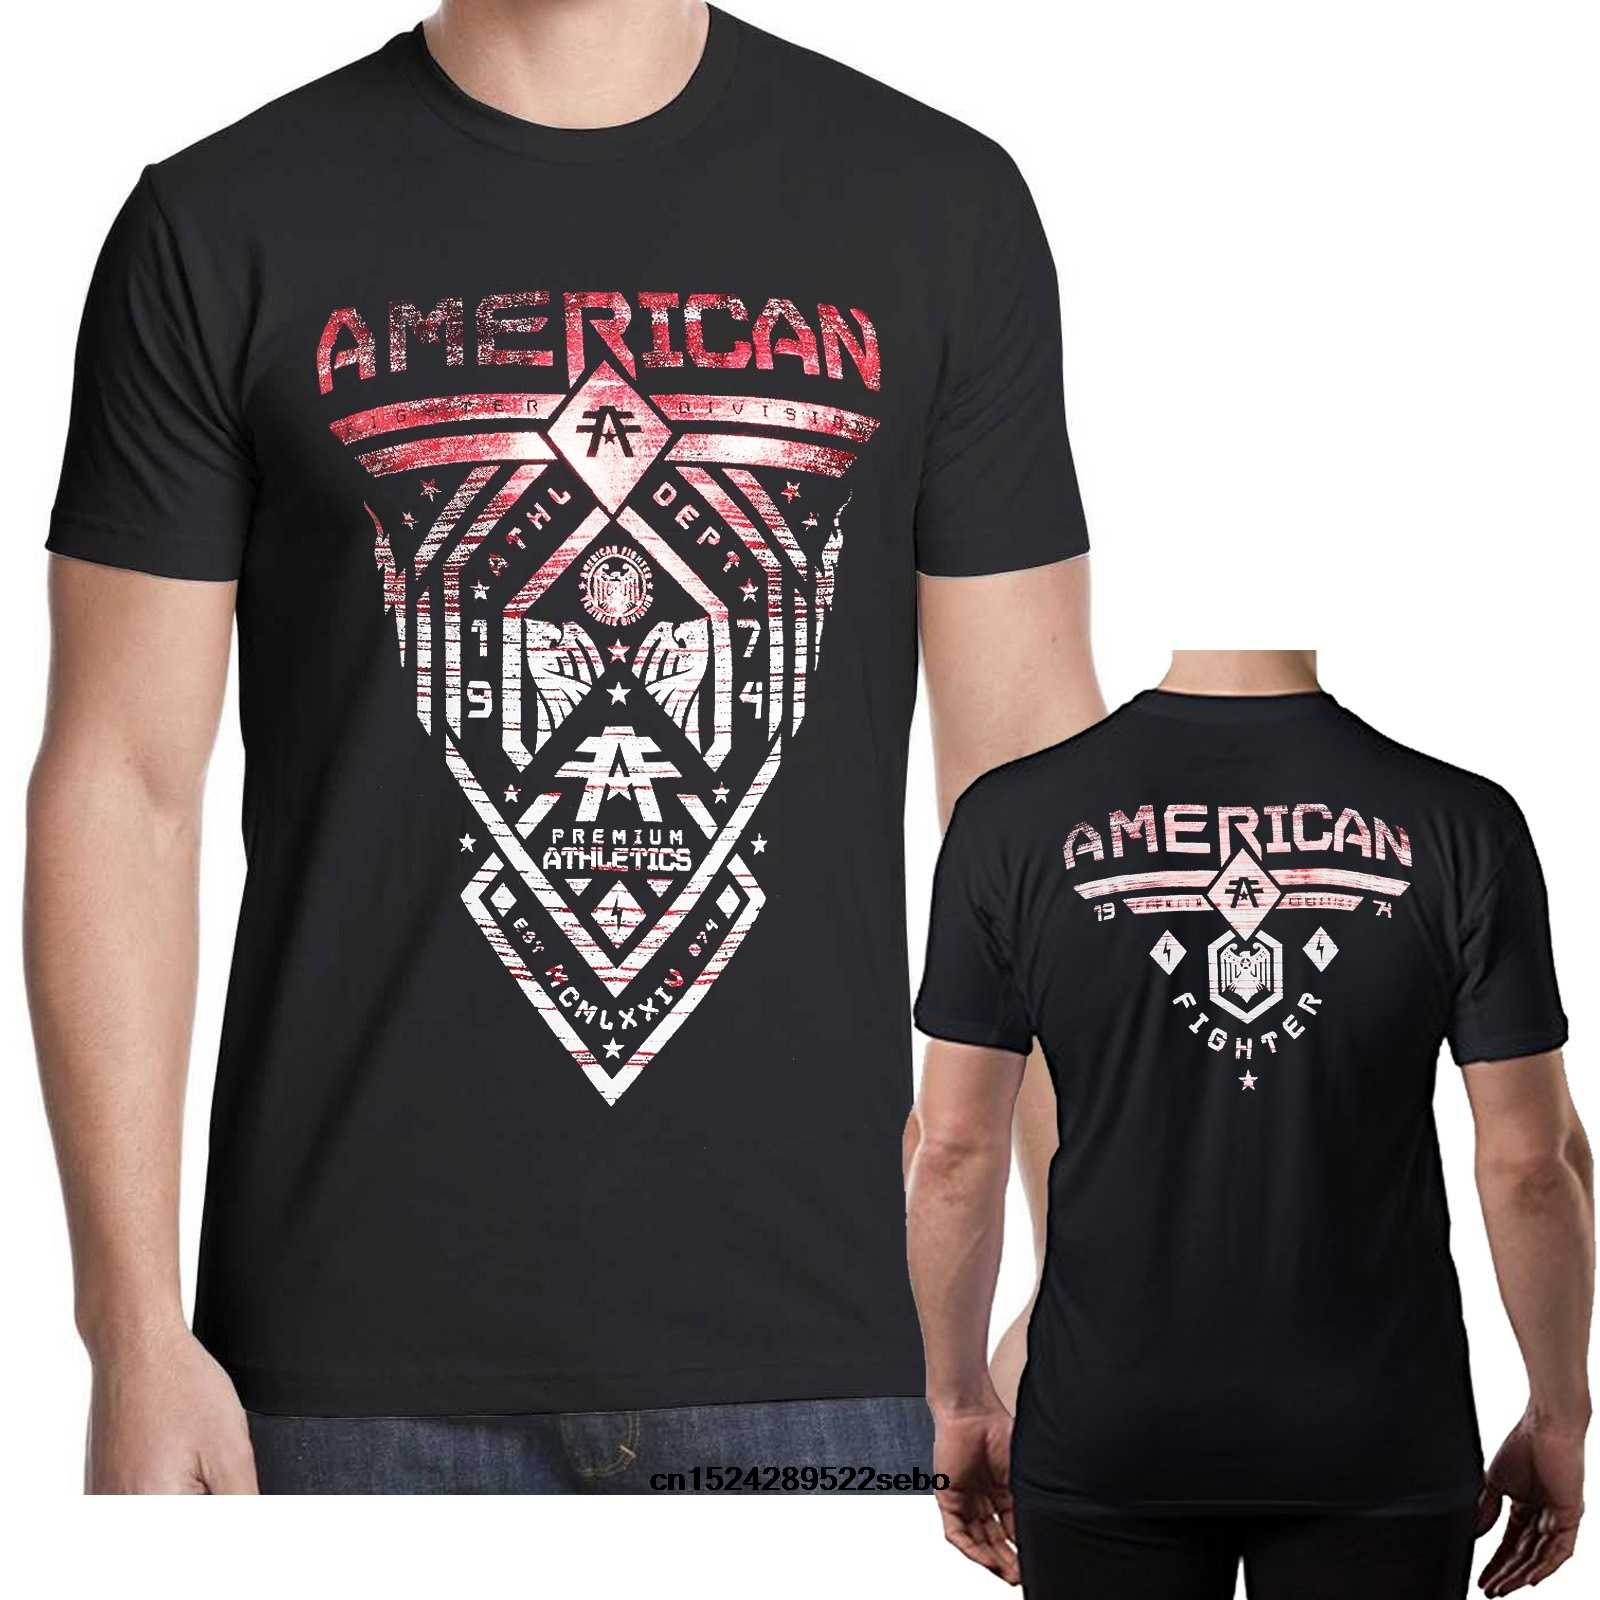 f4abe837307cb2 American Fighter T Shirt 7 Mens Round Neck Short Sleeves T-shirt Cotton  Bottoming T